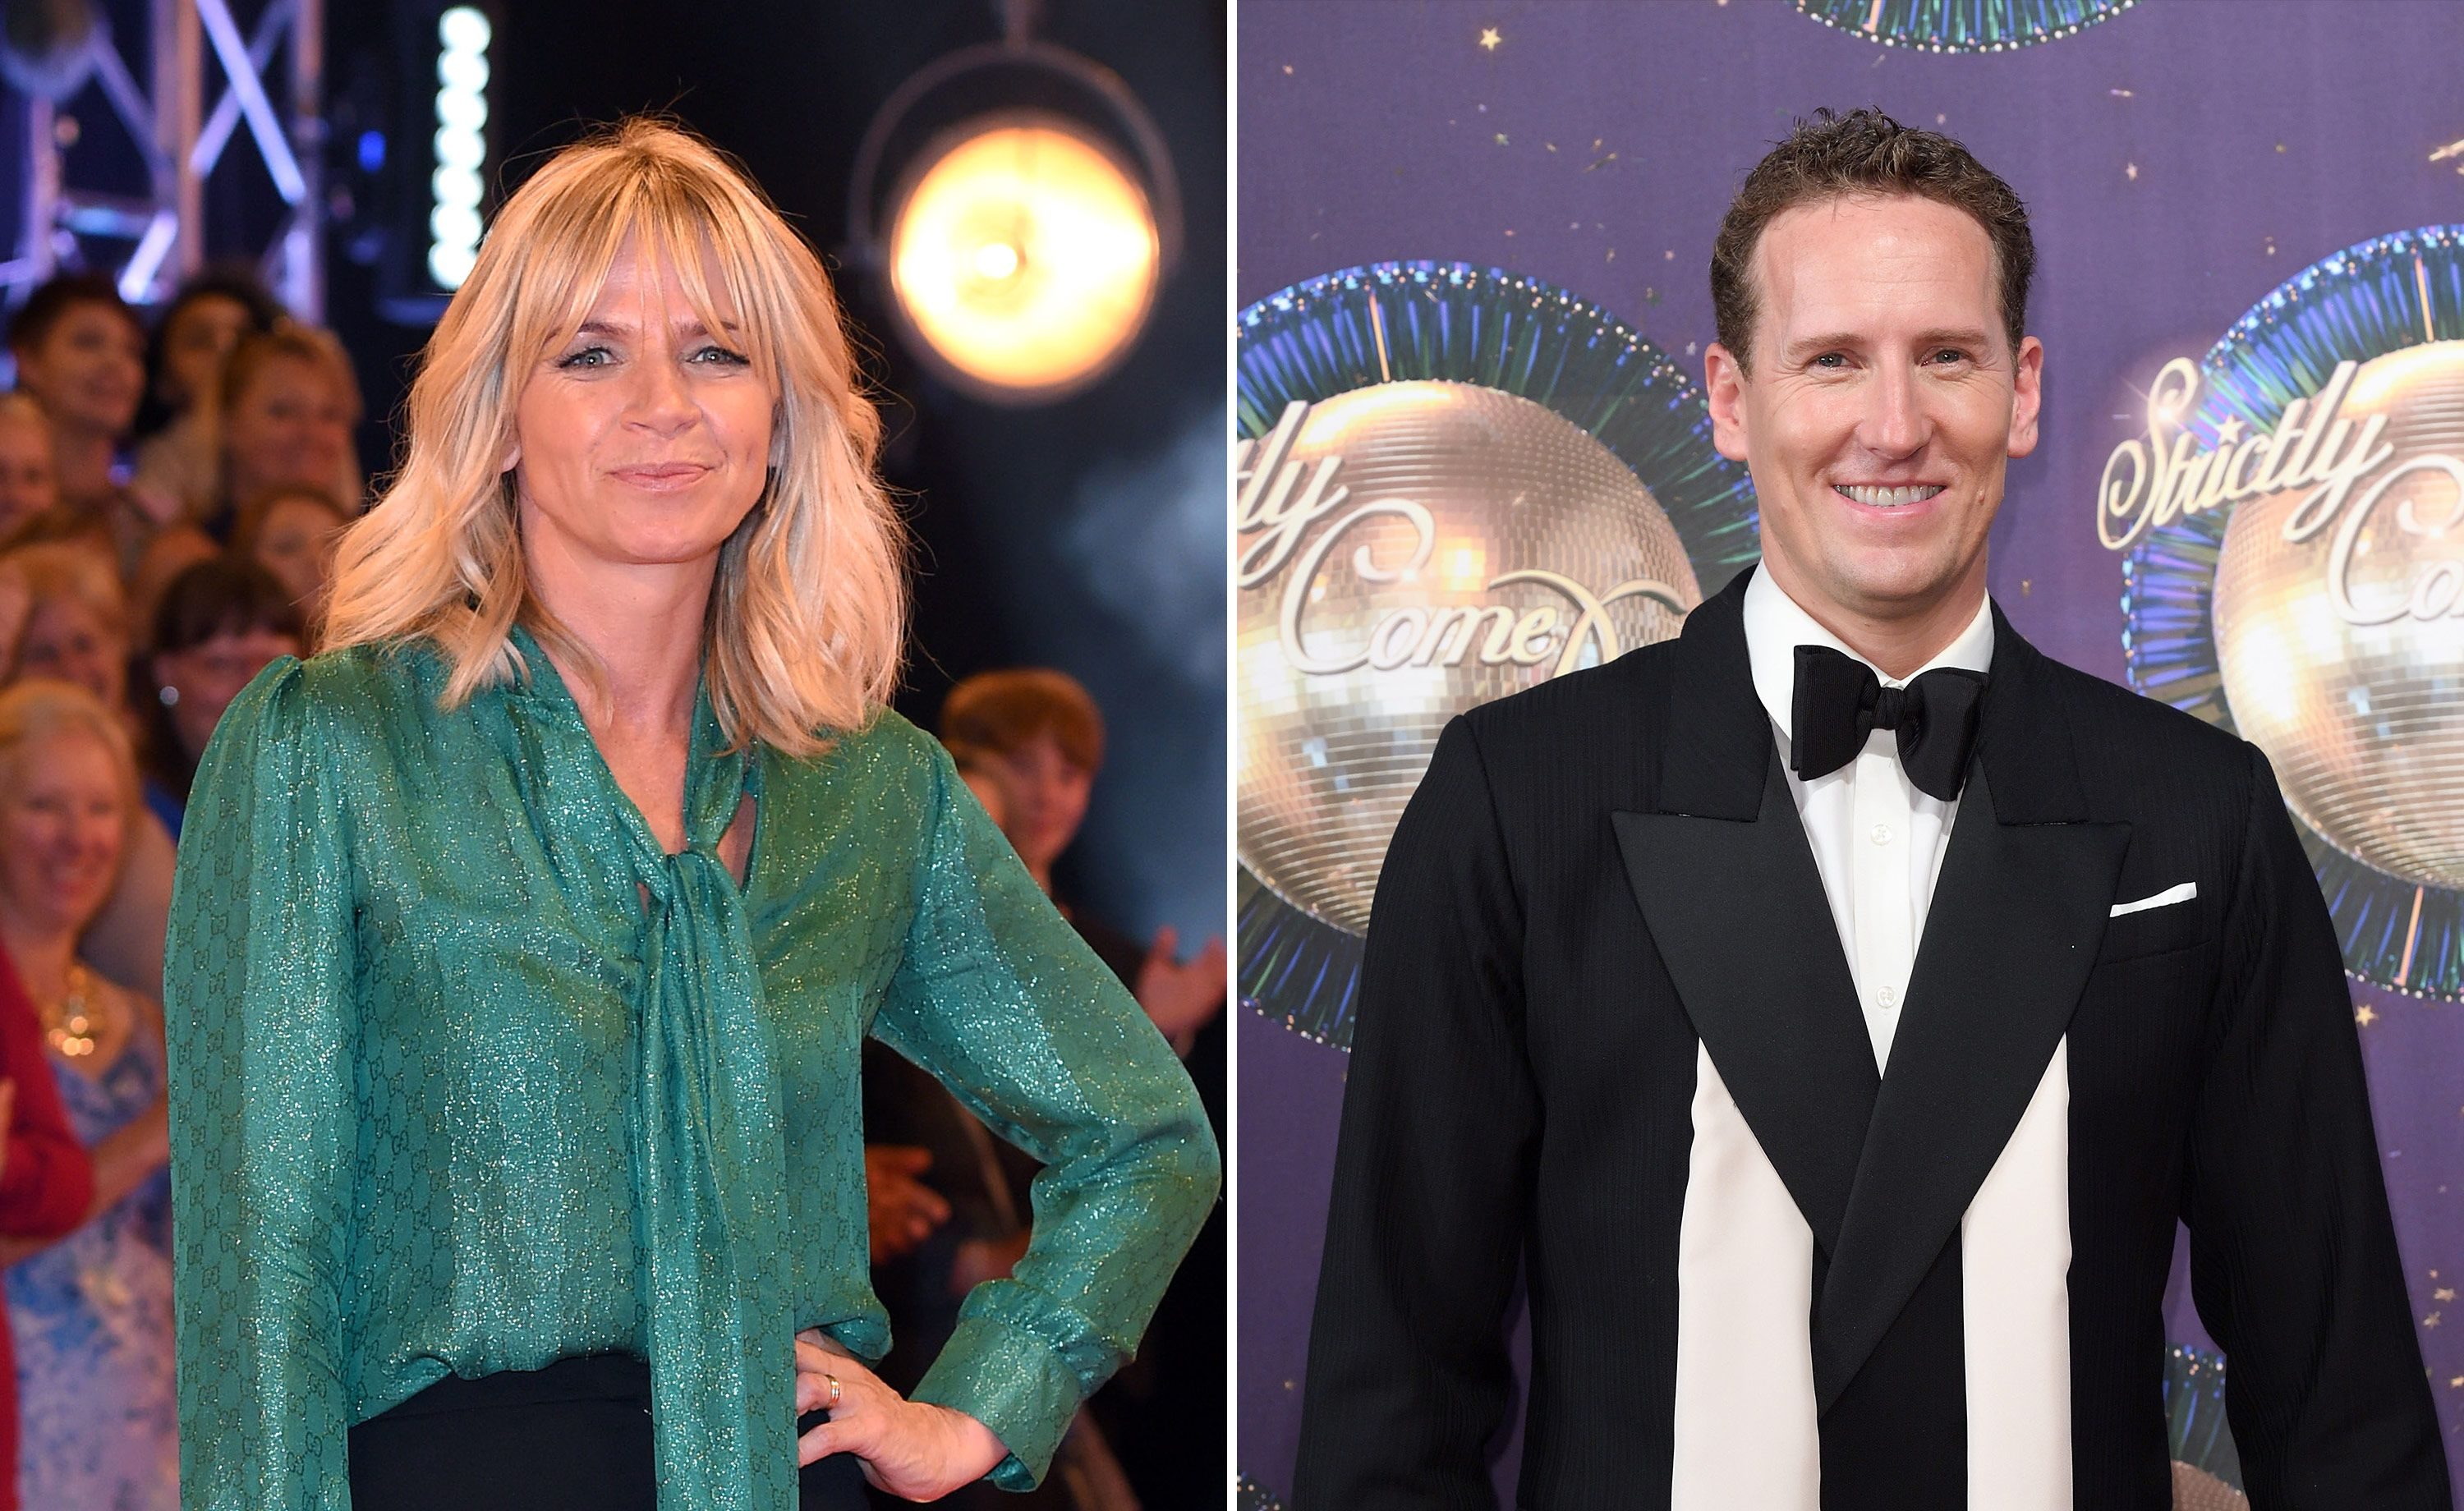 a16fd1992d9 Strictly Come Dancing s Zoe Ball calls Brendan Cole s exit an